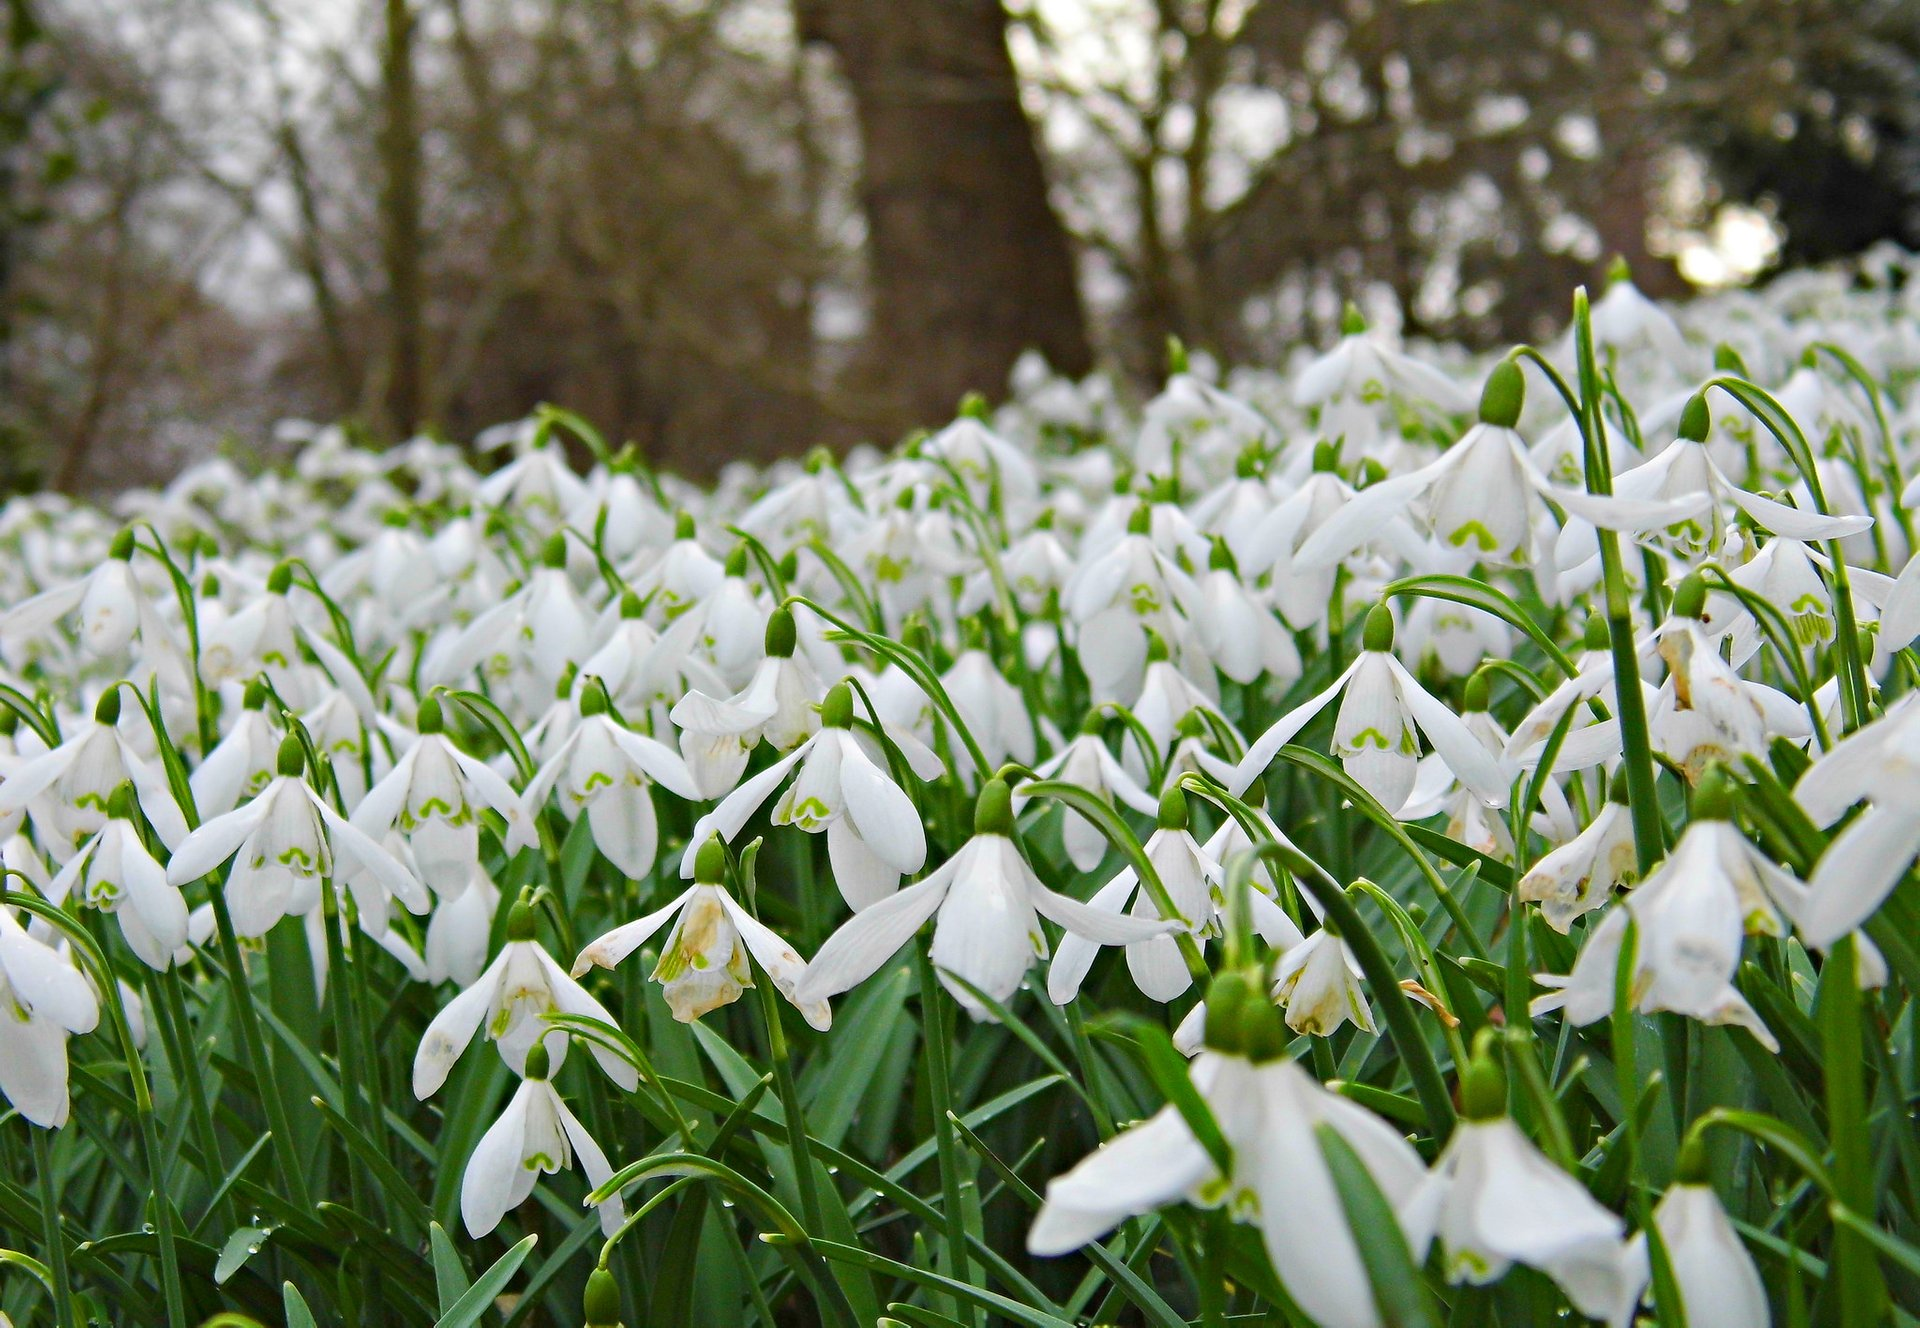 Host of snowdrops! A beautiful sight in the grounds of Penrhyn castle. 2020